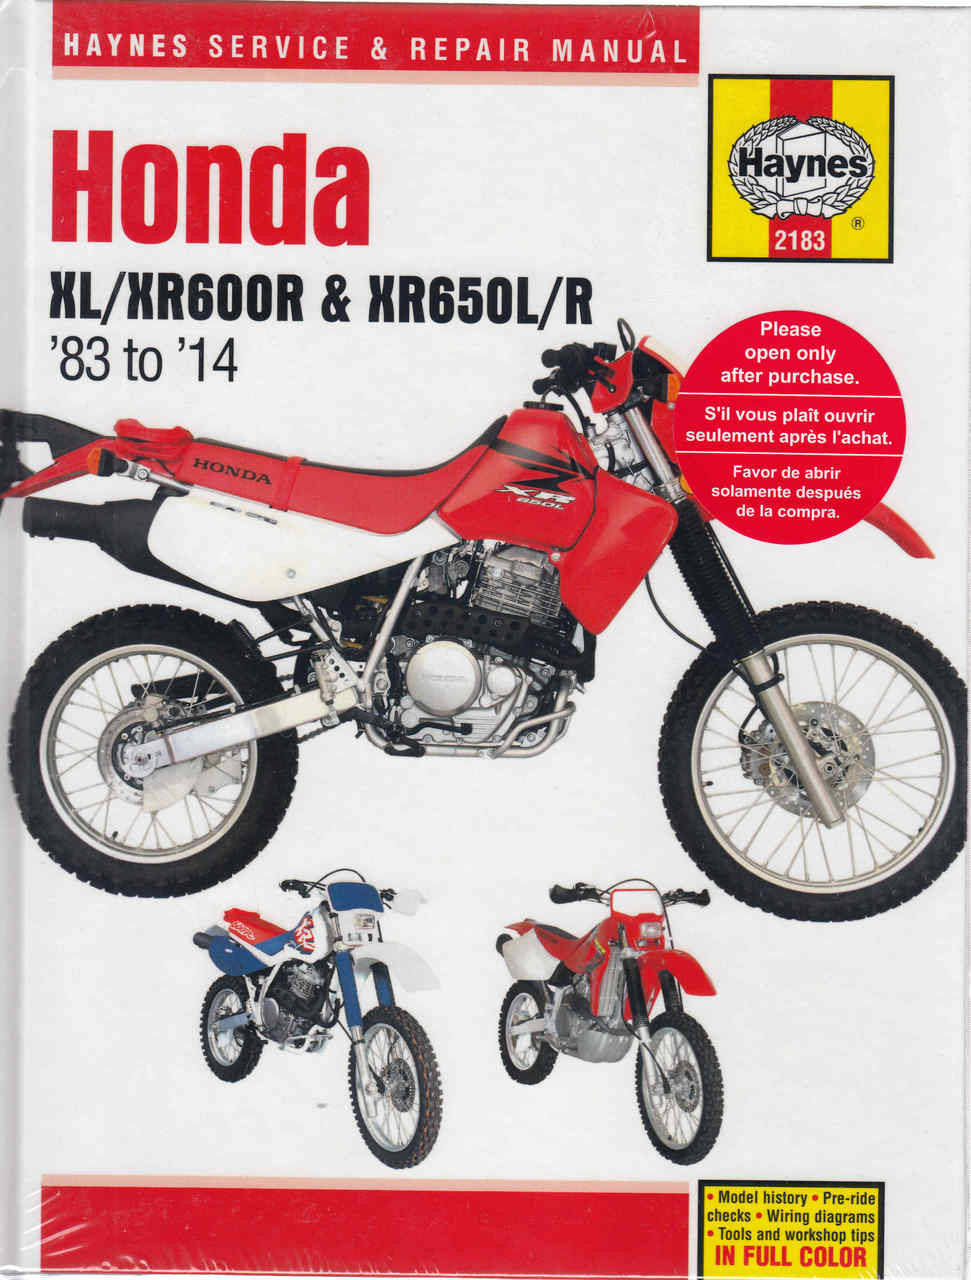 Honda XL600R, XR600R, XR650L, XR650R 1983 - 2014 Workshop Manual  (9781620920978) ...